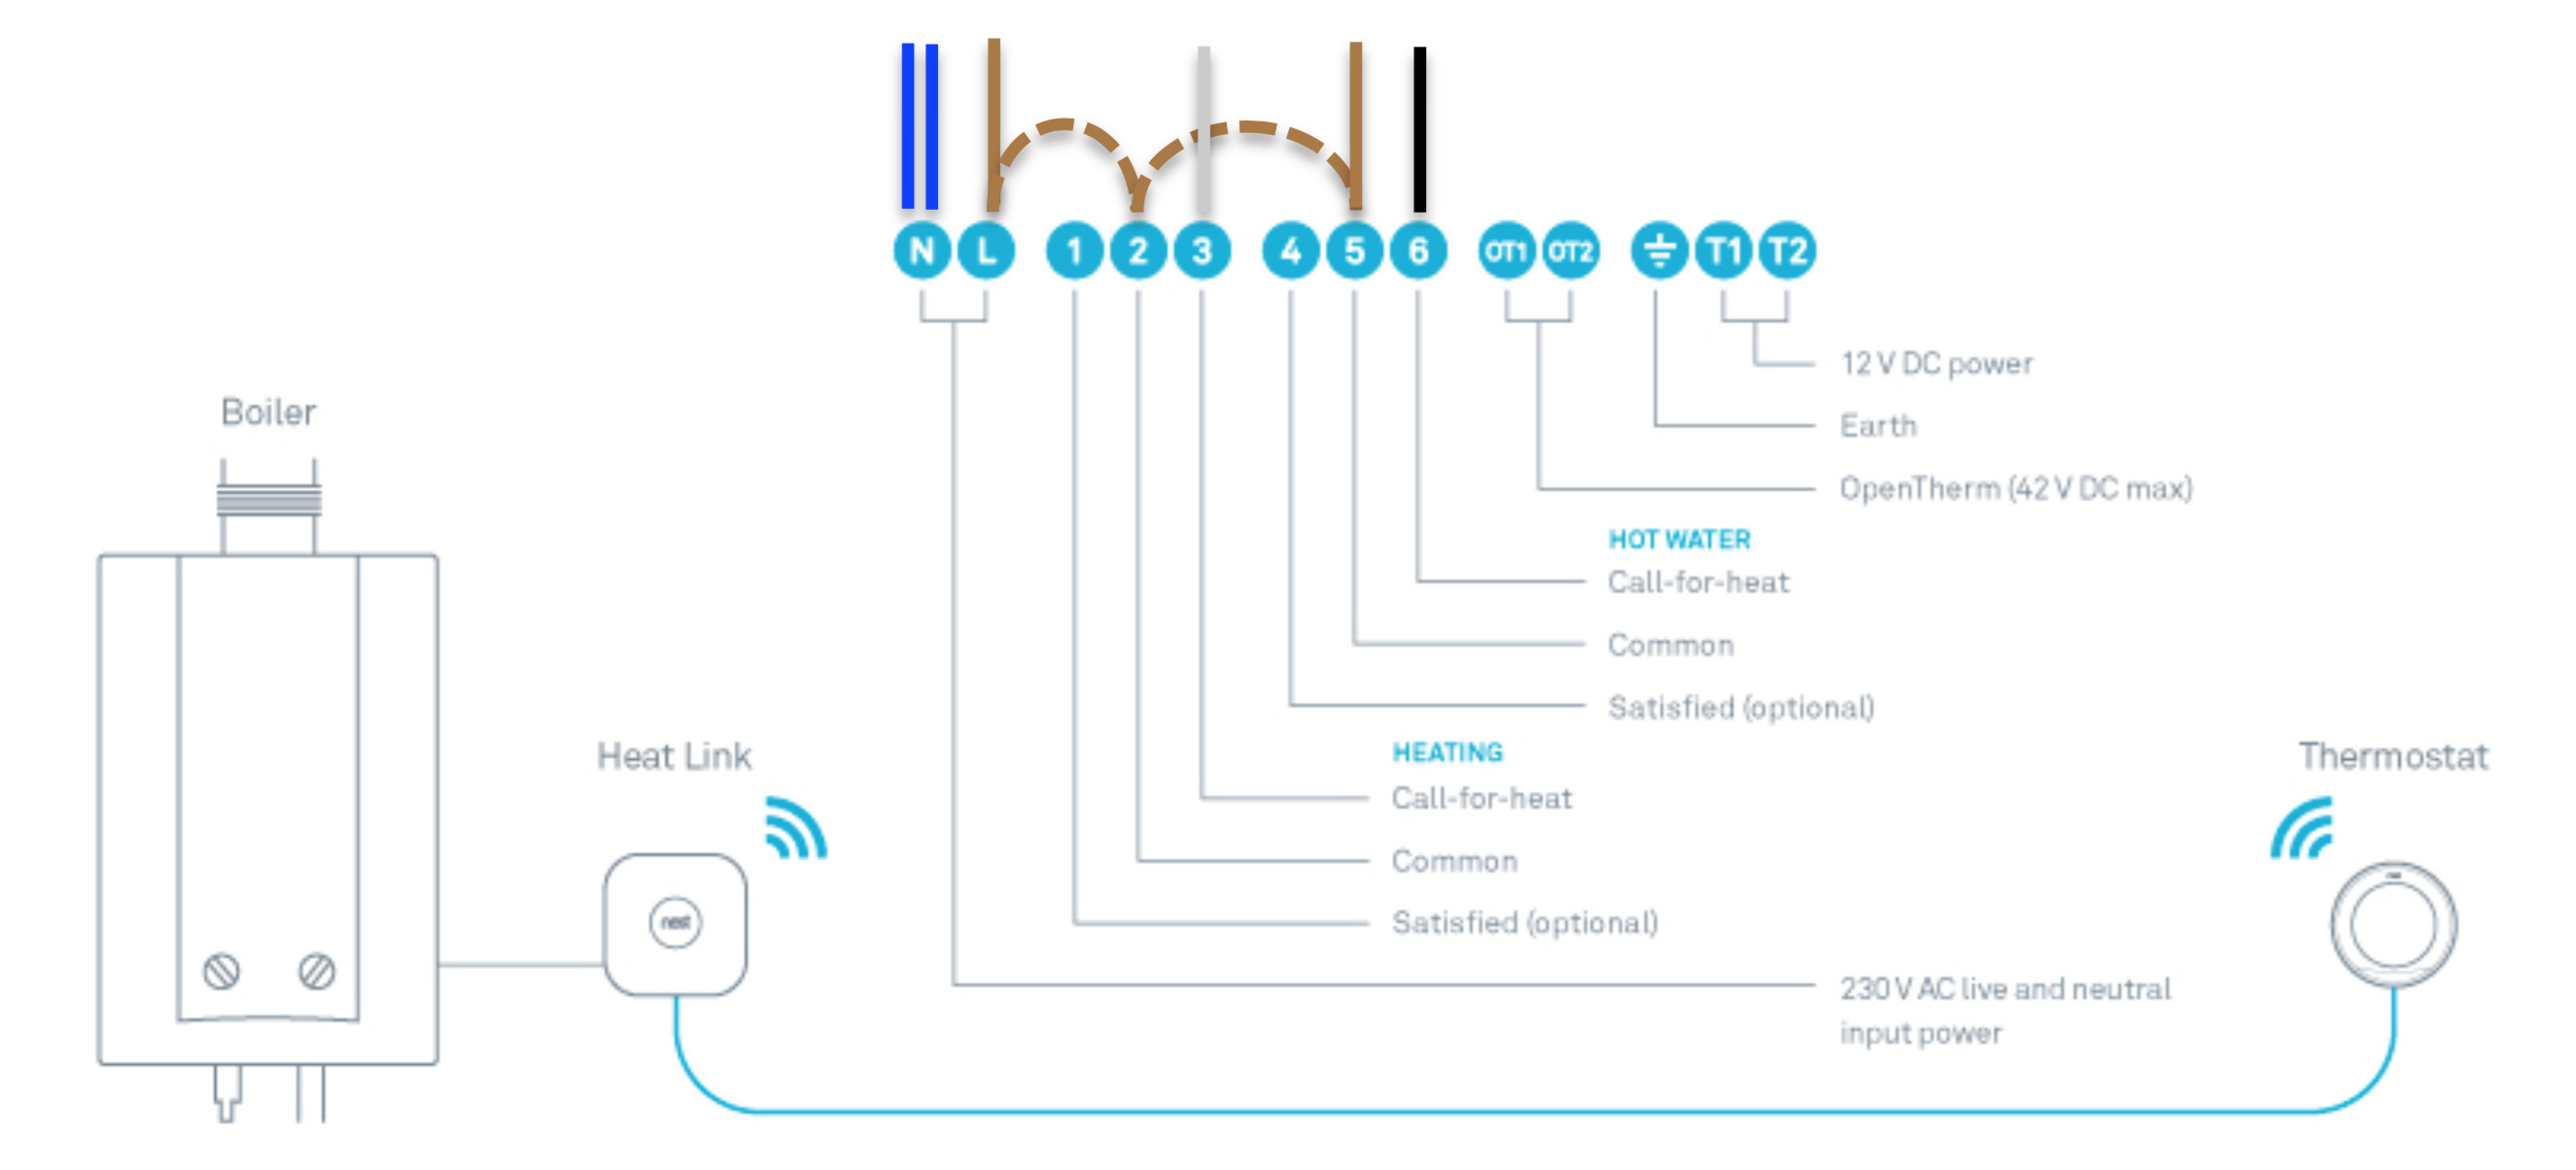 Nest Thermostat Humidifier Wiring Diagram Reference Danfoss Relay - Nest Tstat Wiring Diagram